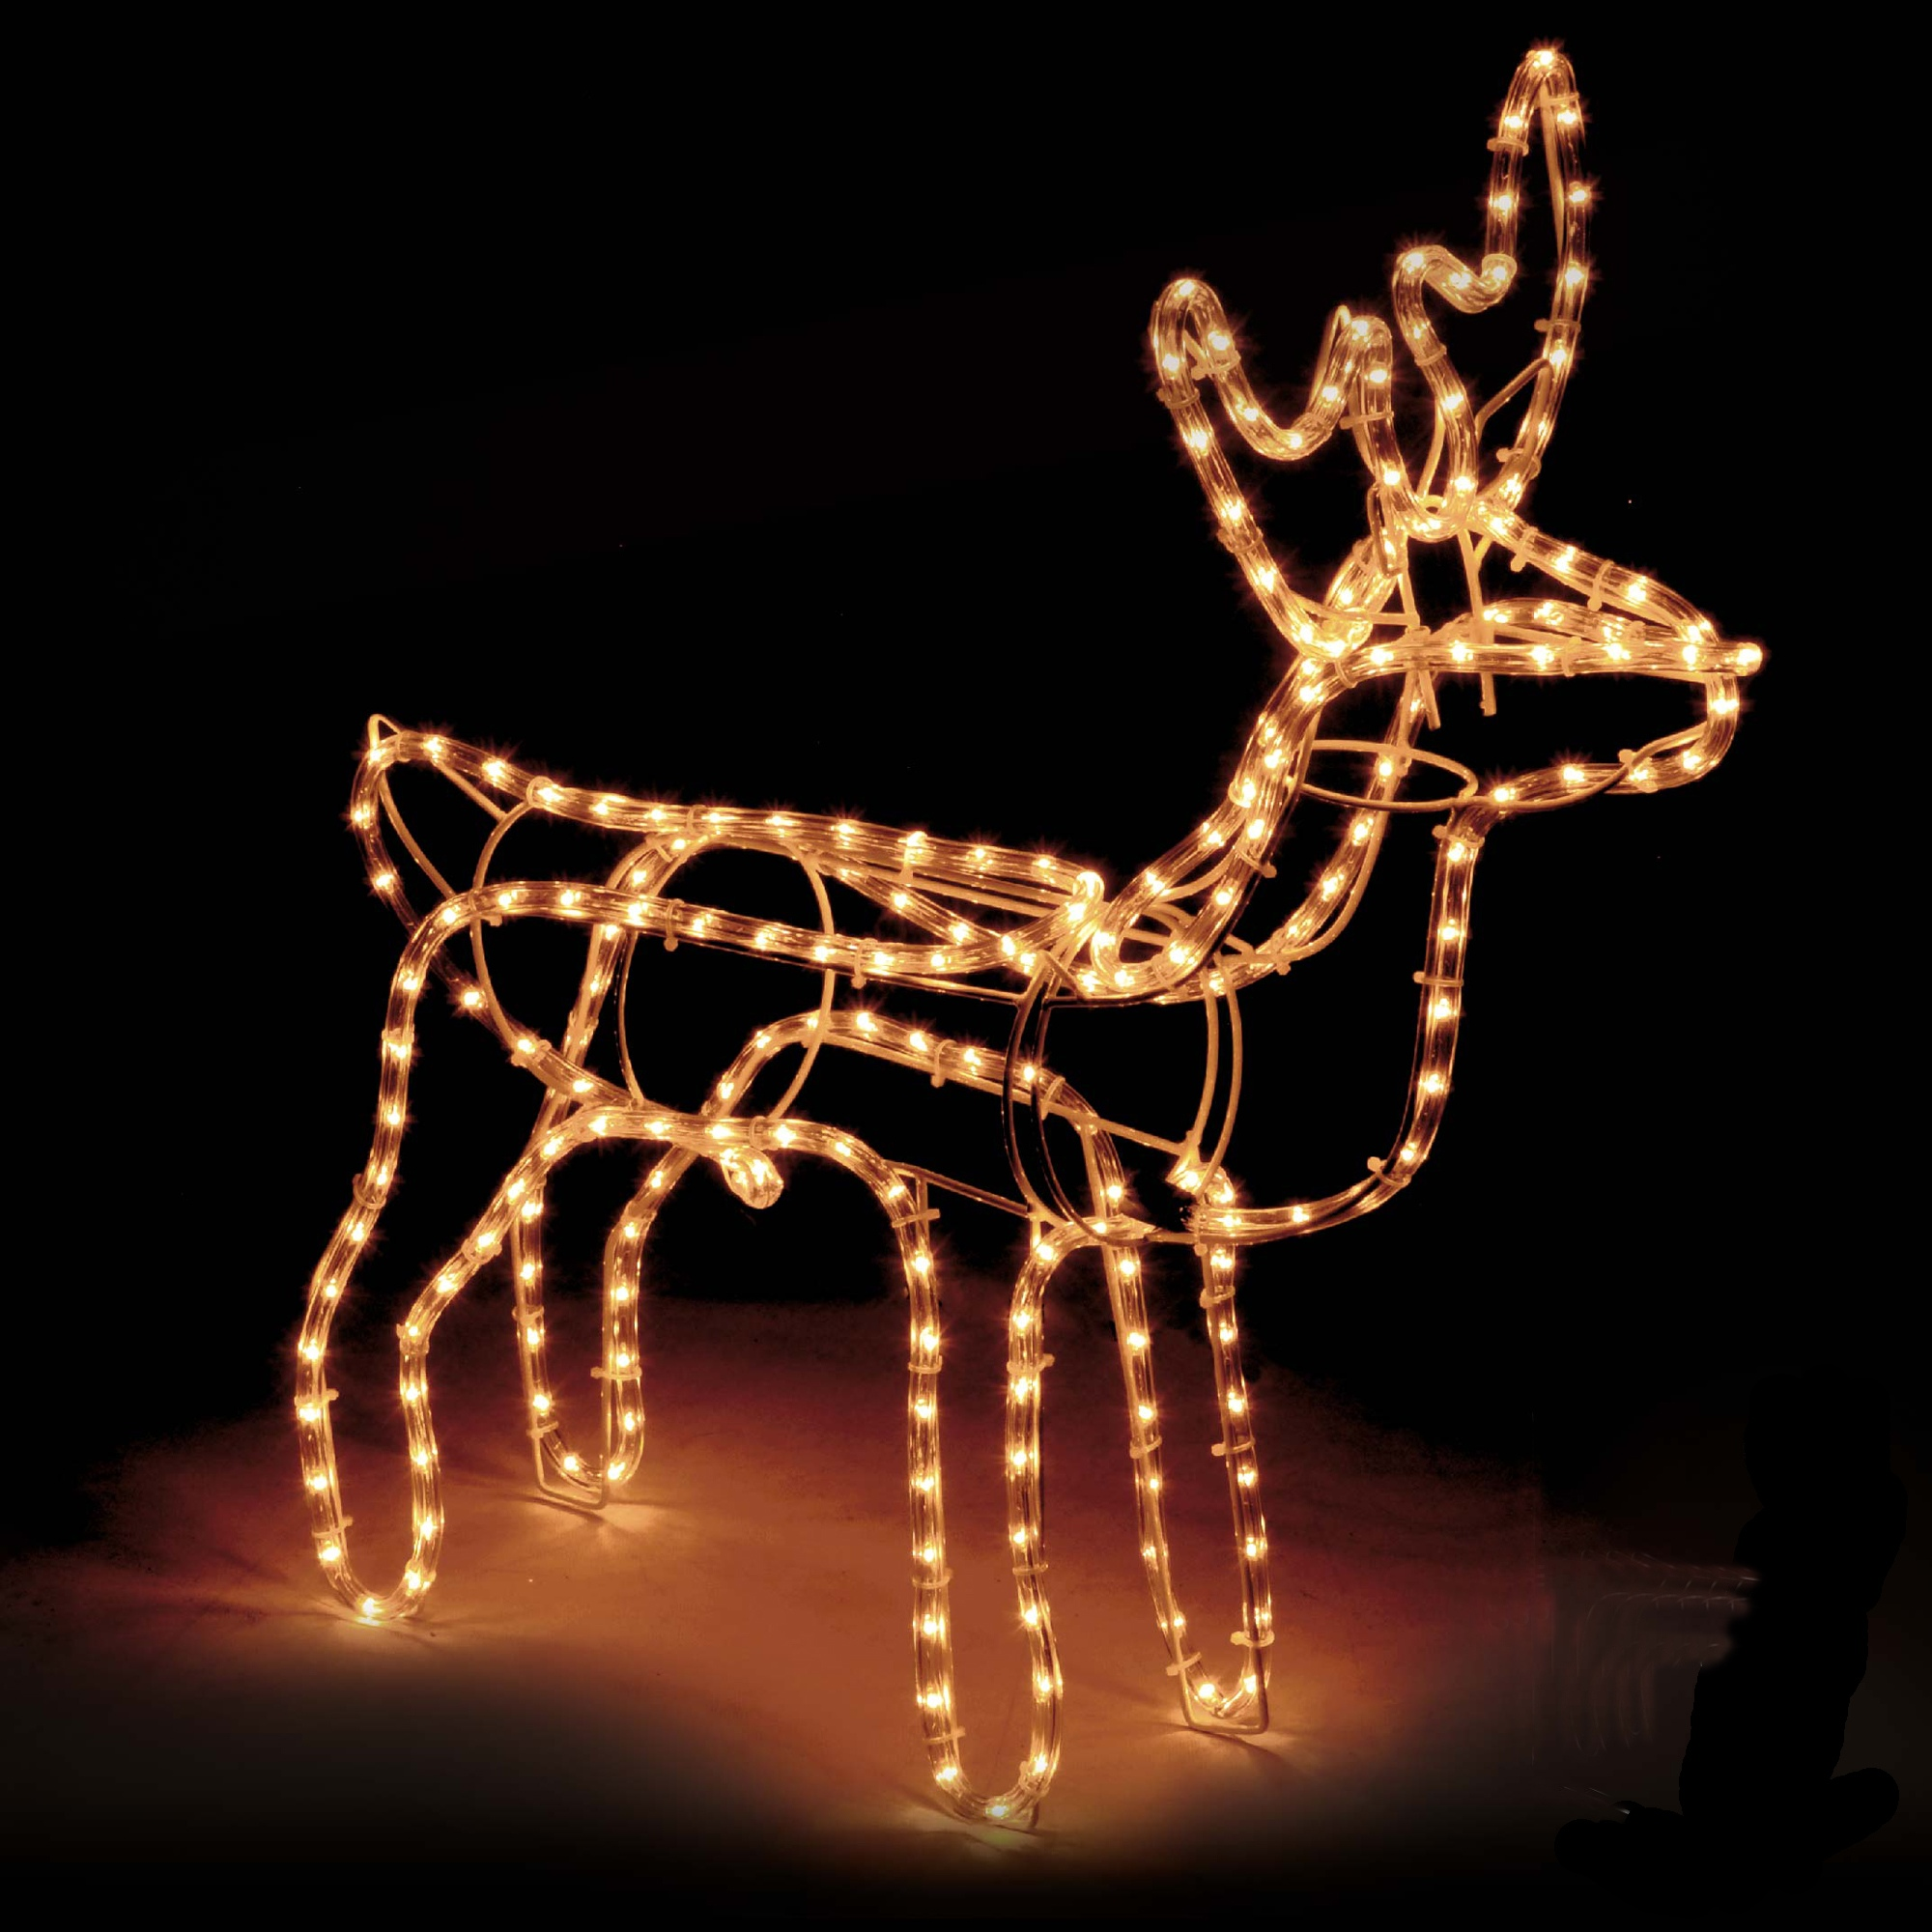 Large Christmas Reindeer Light Up Outdoor Garden Rope Decoration Silhouette 8718158979667  eBay